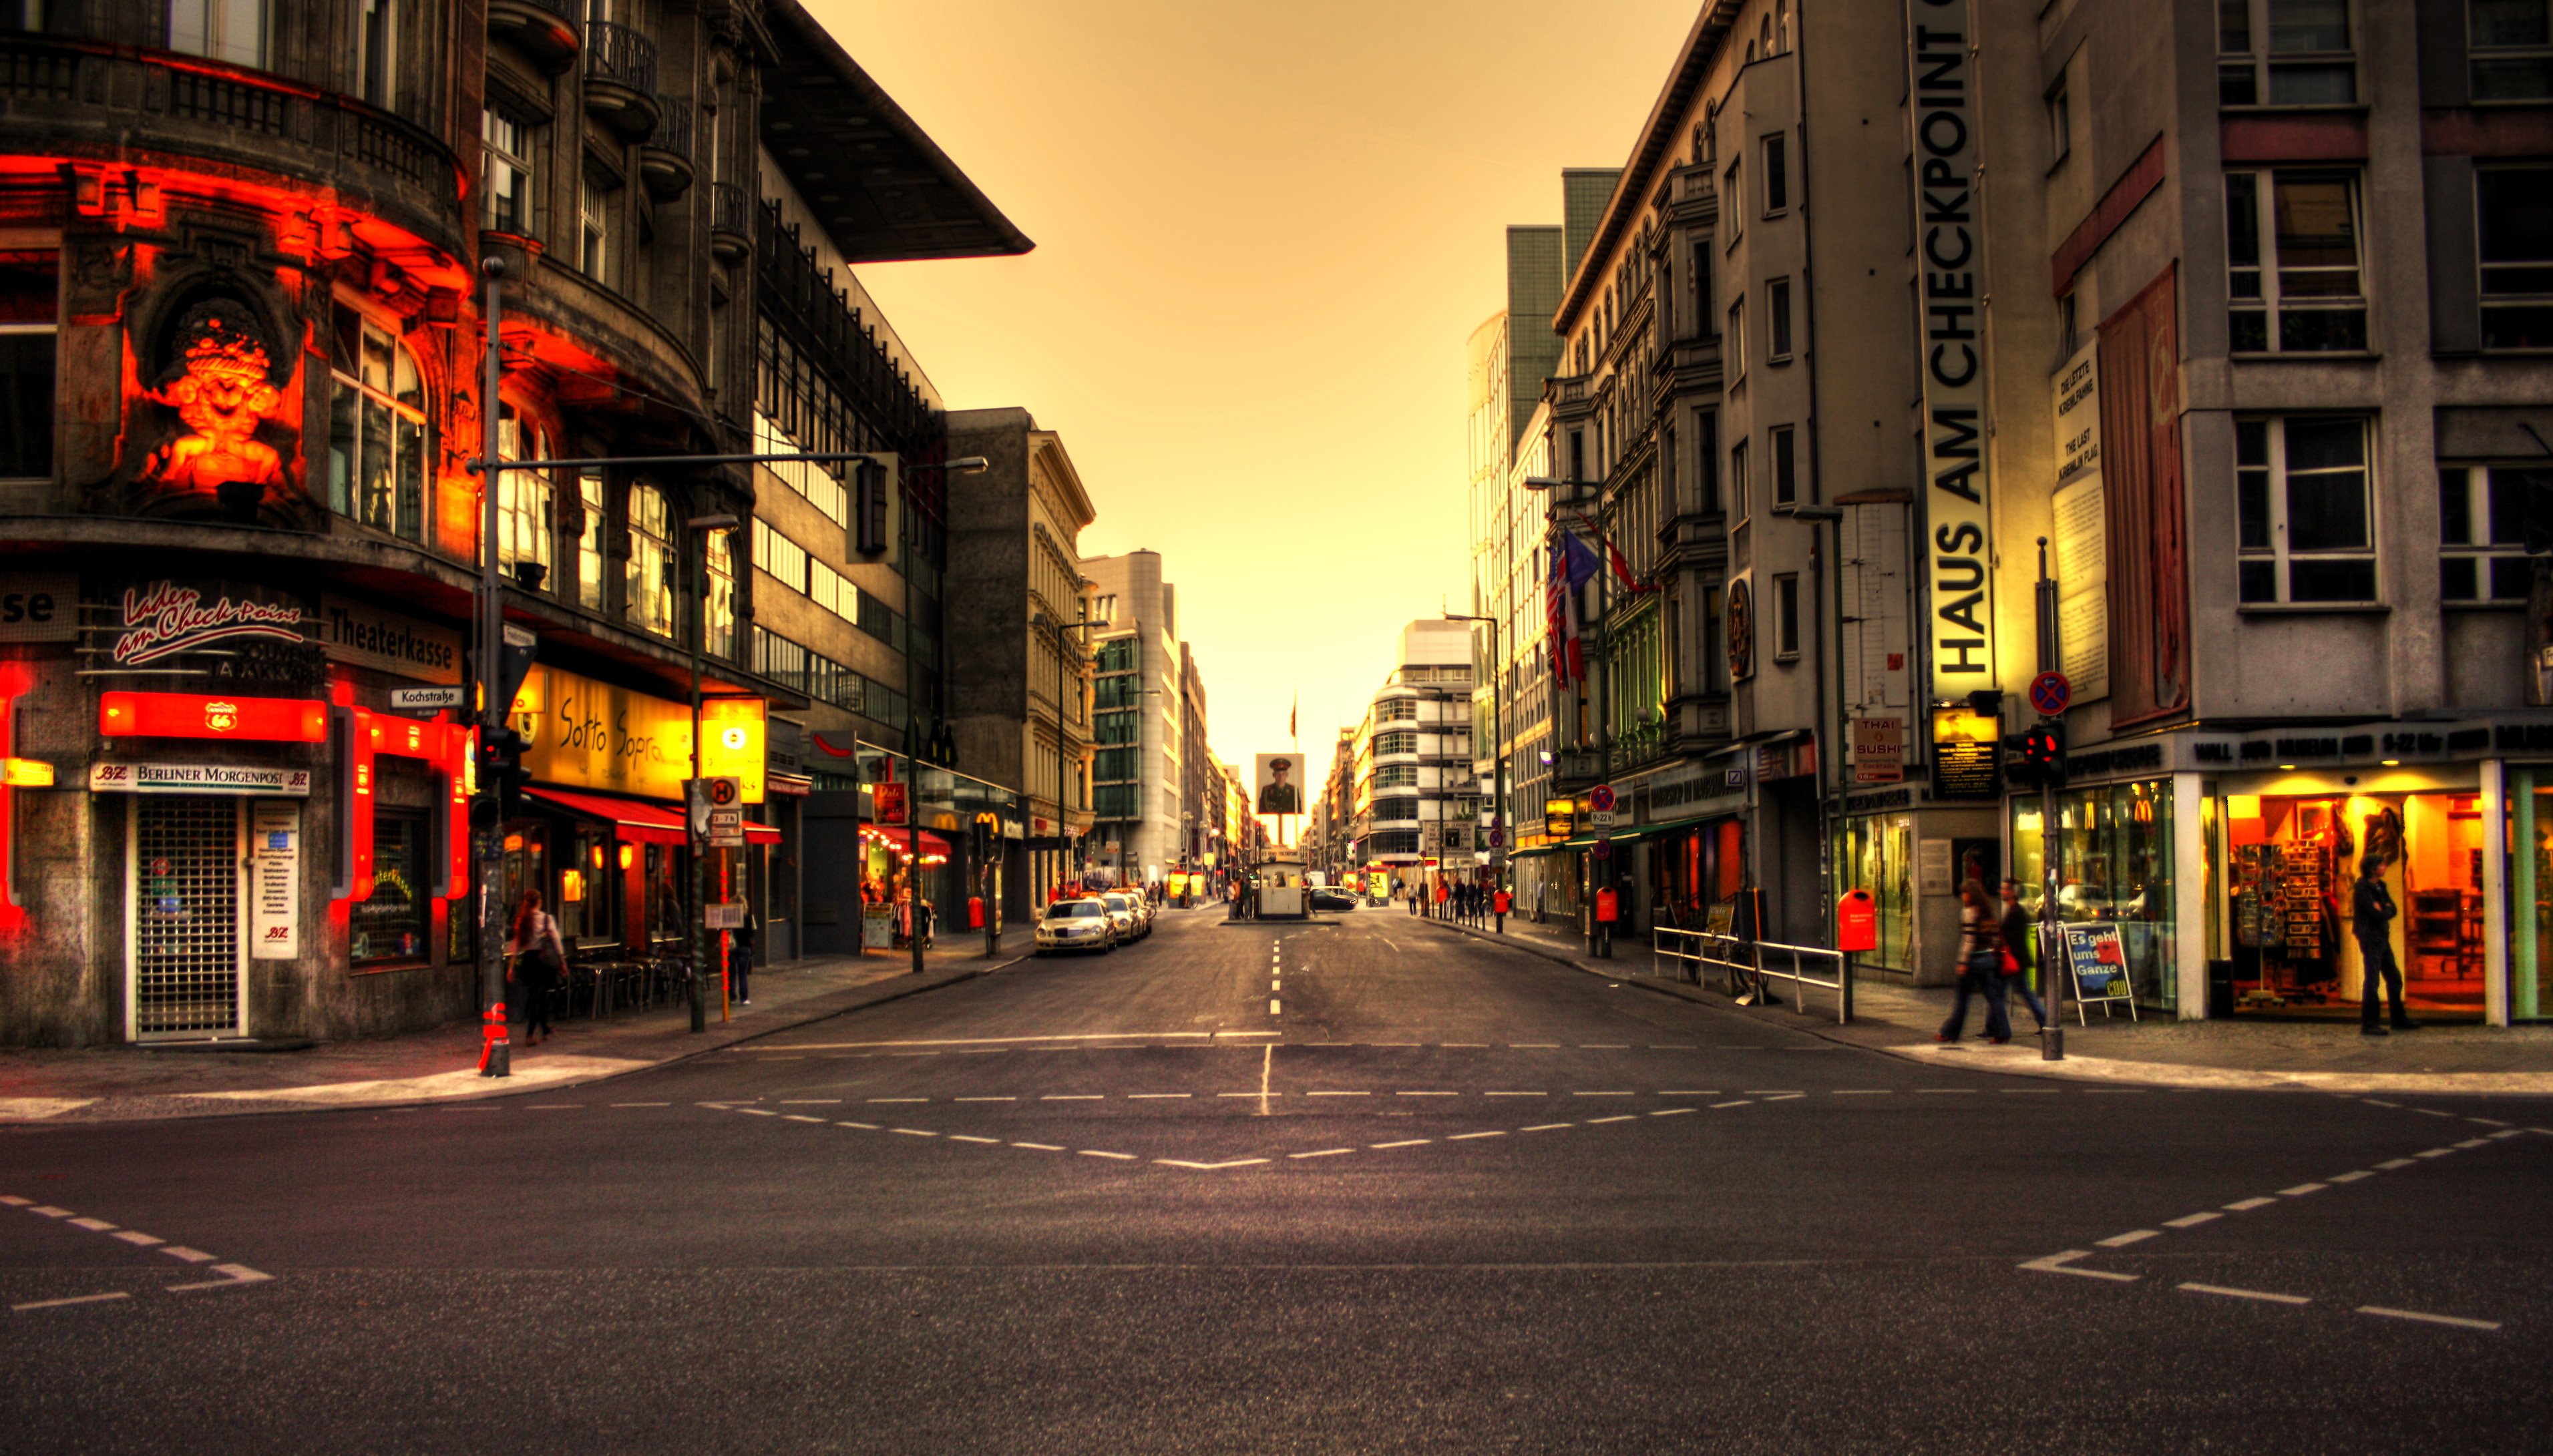 Germany Checkpoint Charlie Checkpoint Charlie By Hans Kjz Dkuy